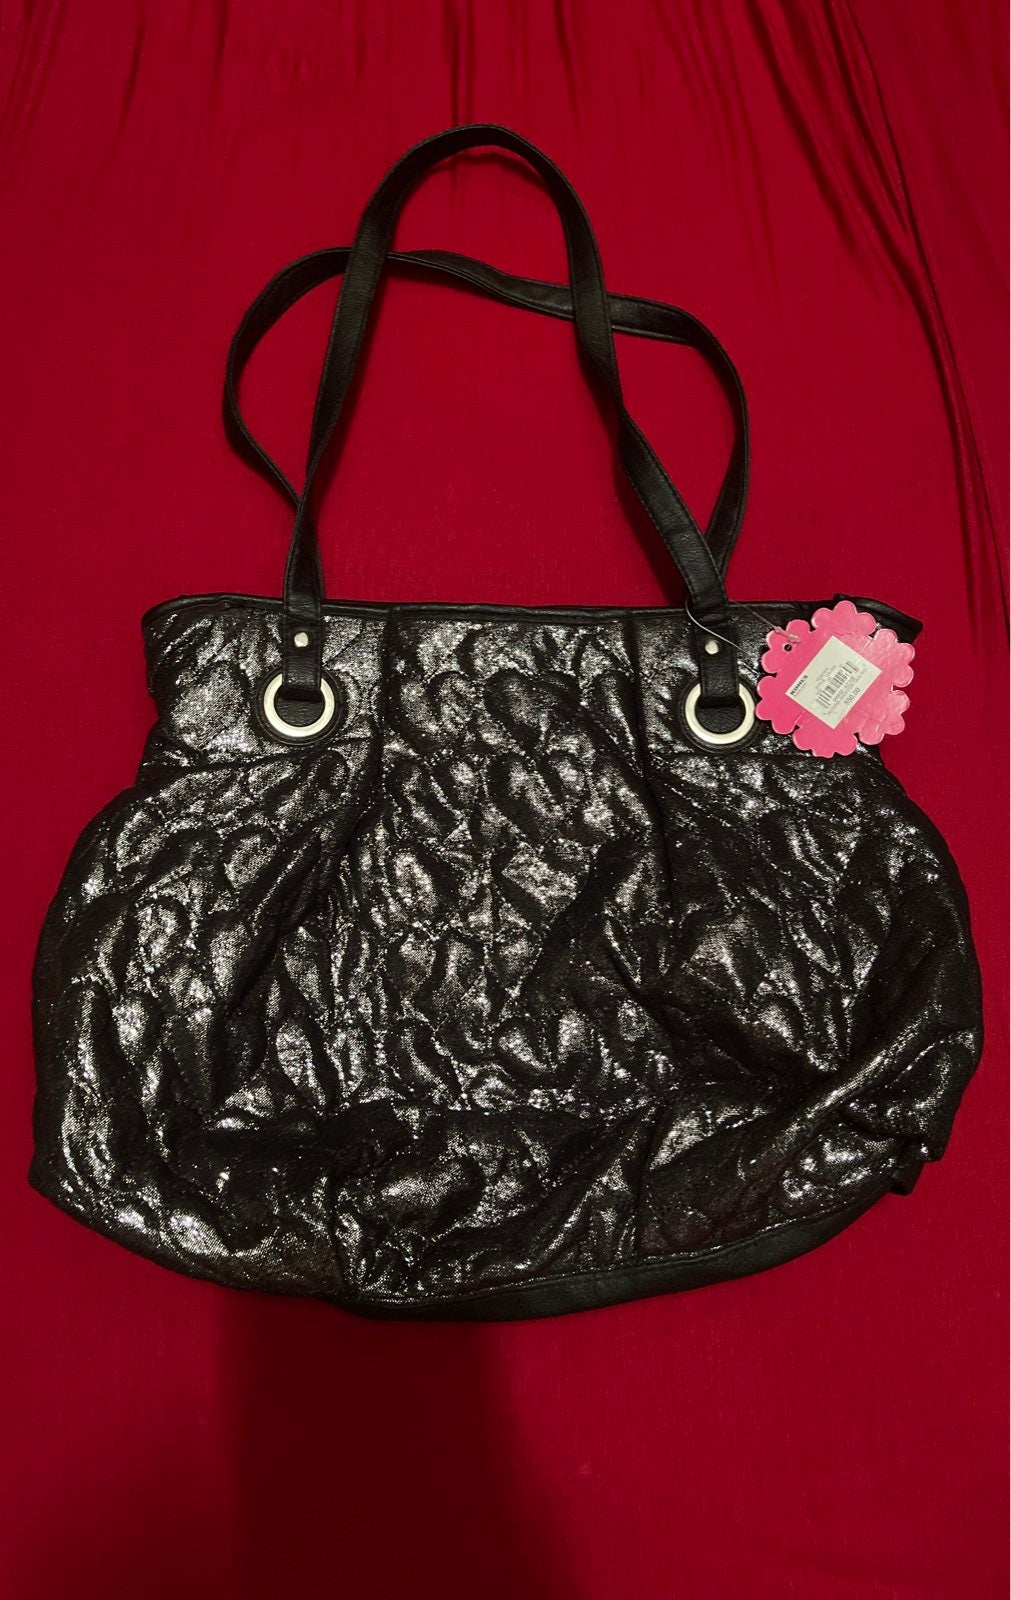 VICTORIA SHOPPER QUILTED PURSE